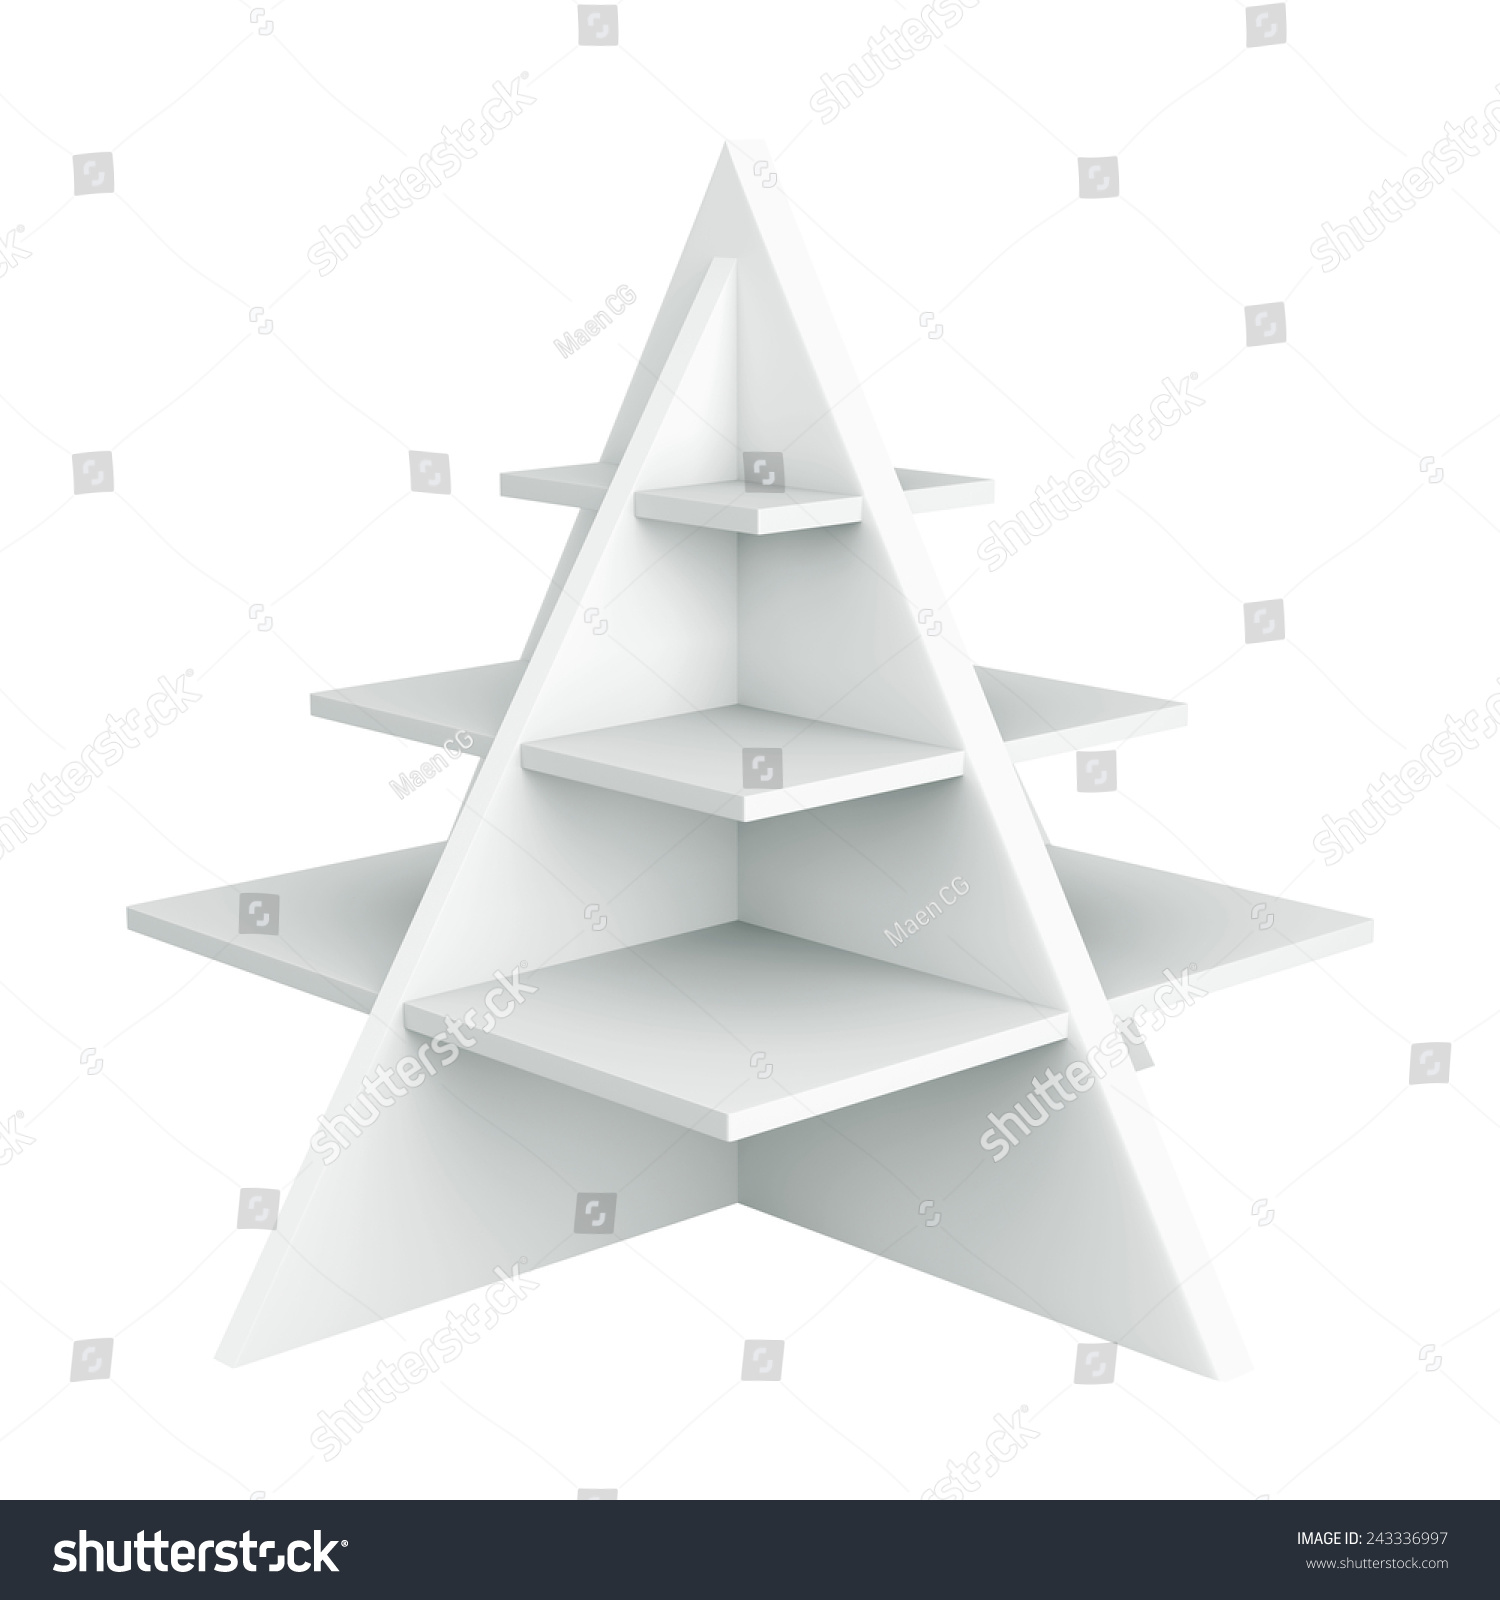 3d christmas tree shelves and shelf design object isolated